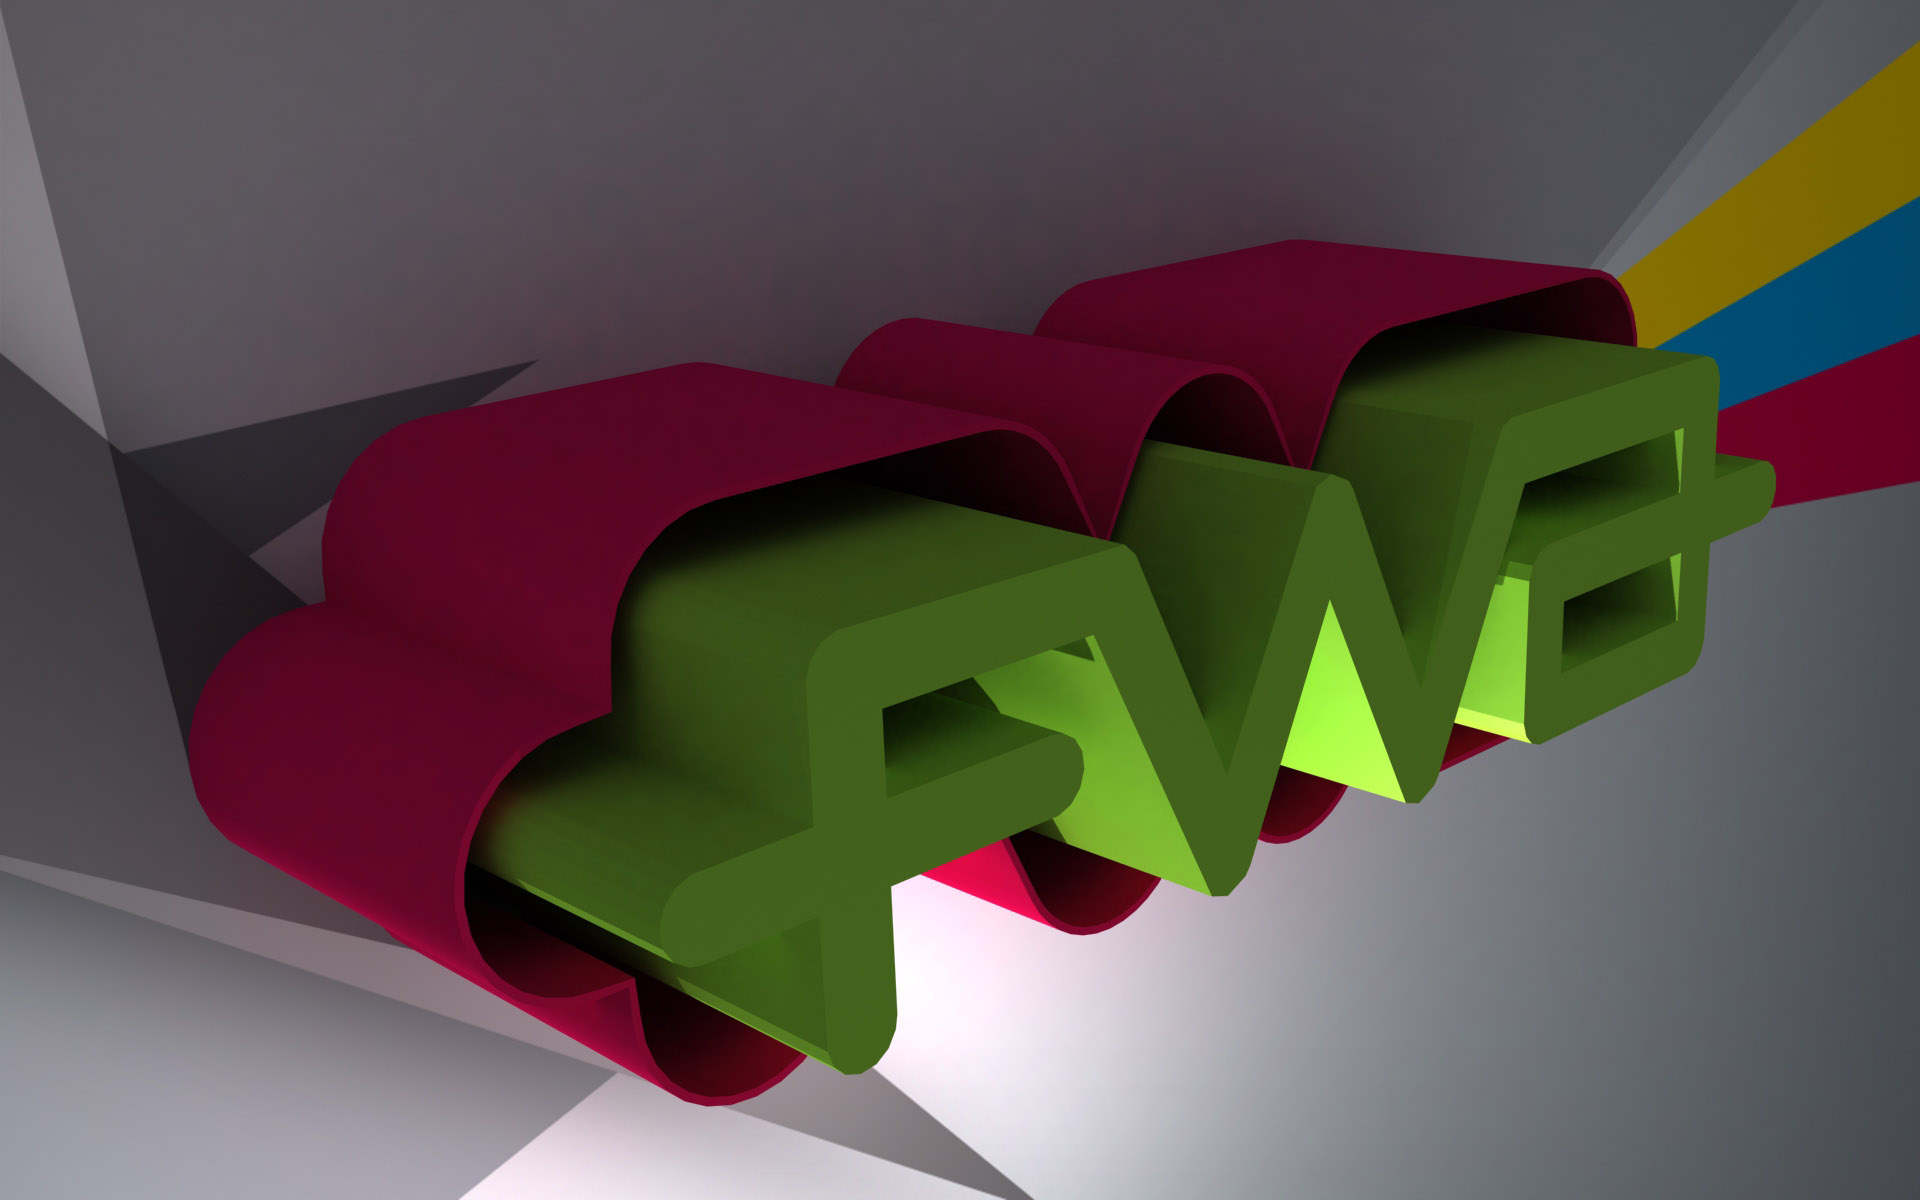 Widescreen FWA Creative Design 27243